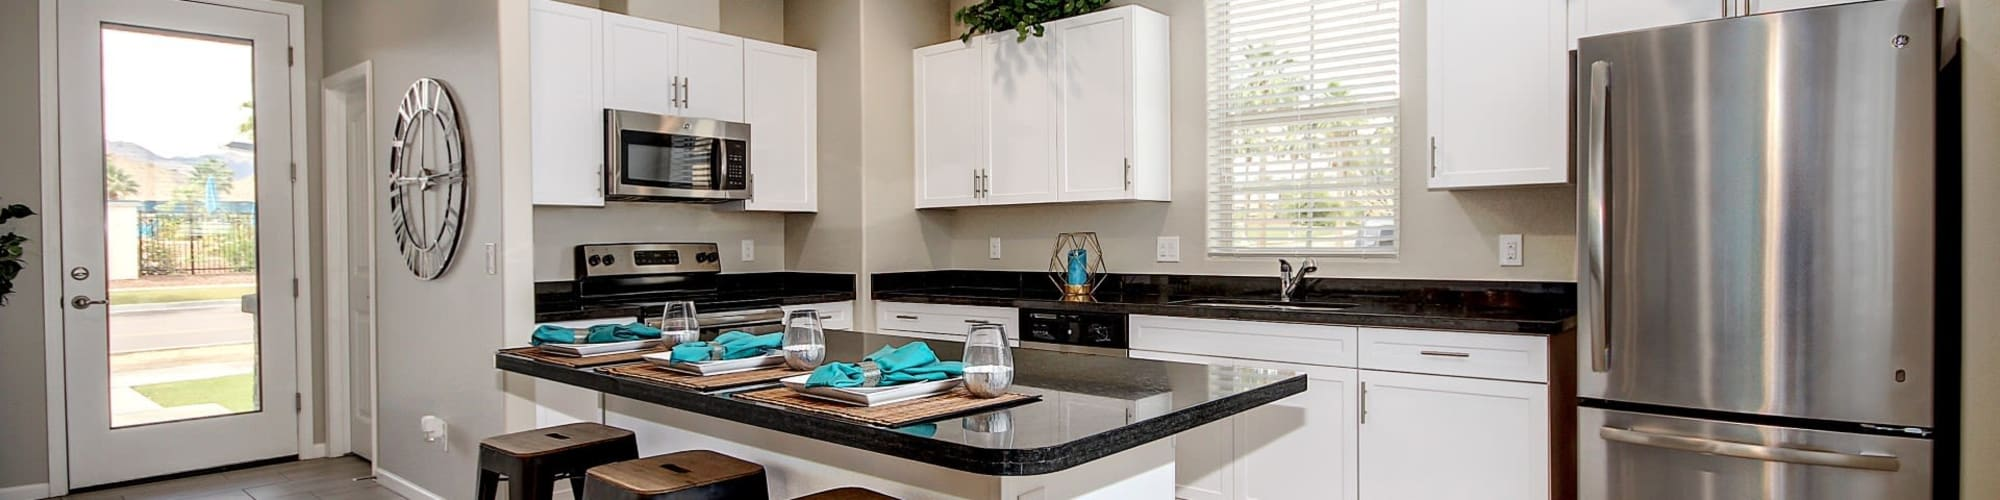 Contact us at BB Living at Val Vista in Gilbert, Arizona